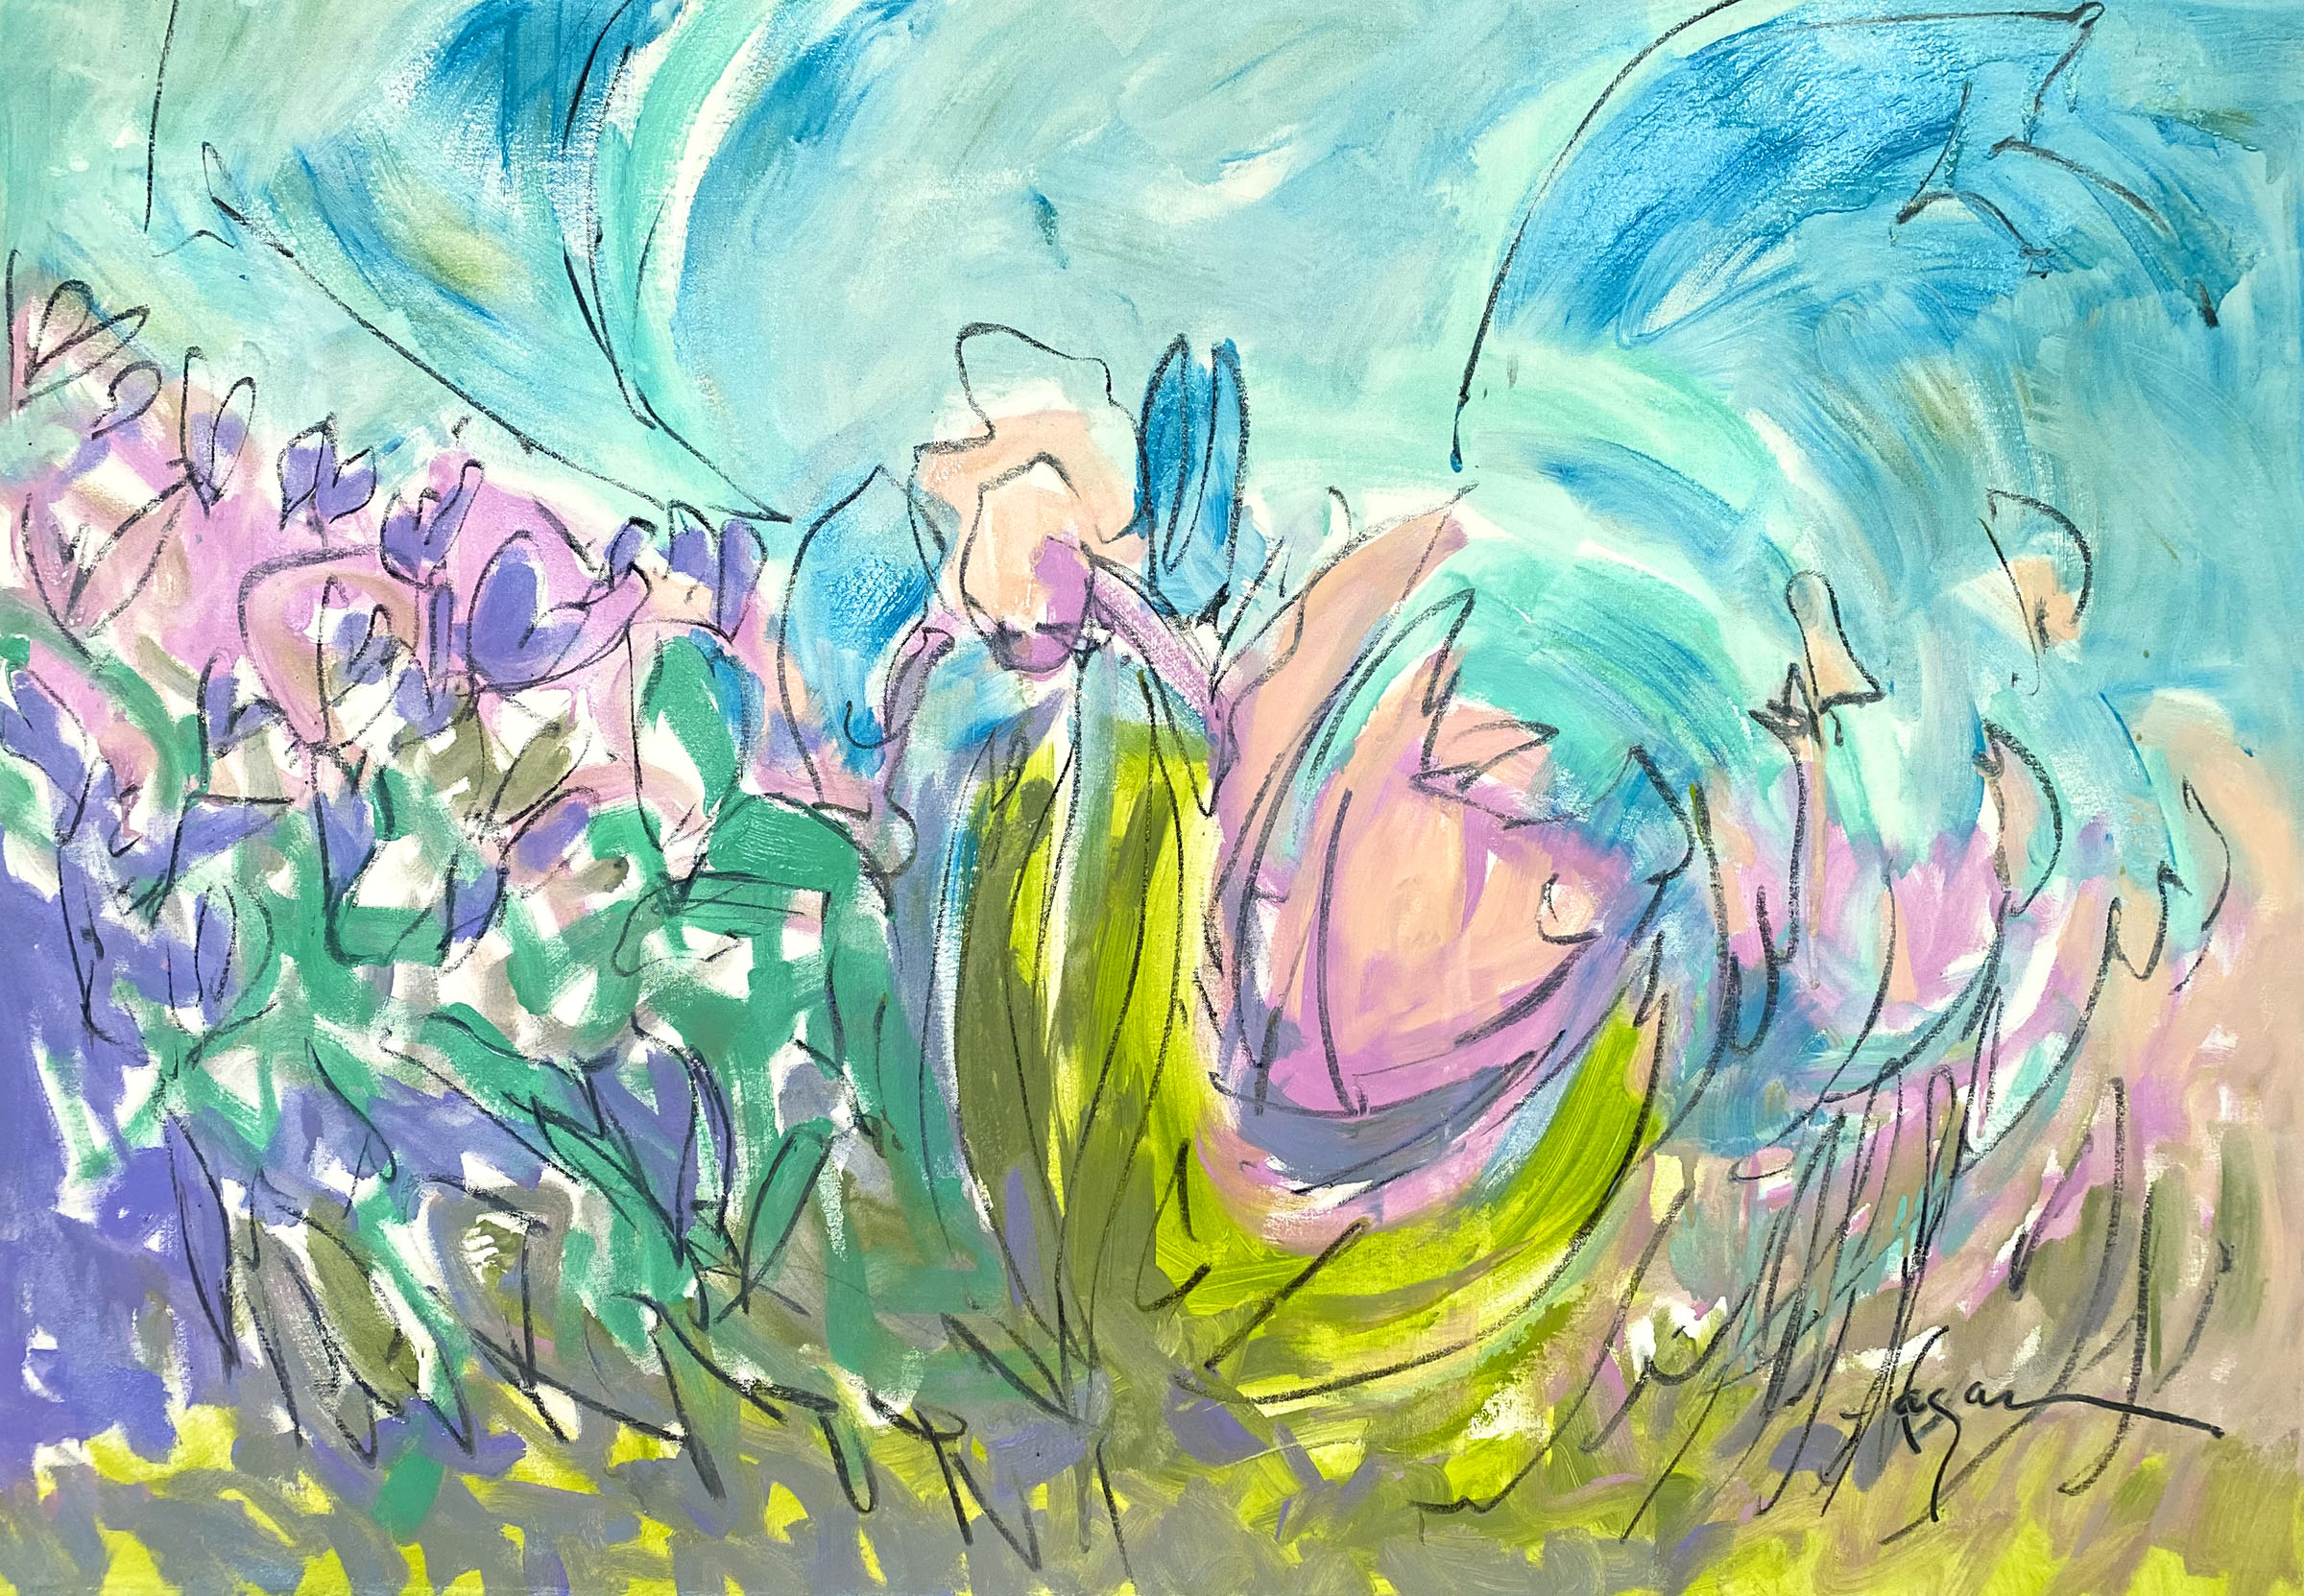 For Budget Conscious Client, Oversize Landscape & Floral Paintings on Rolled Canvas